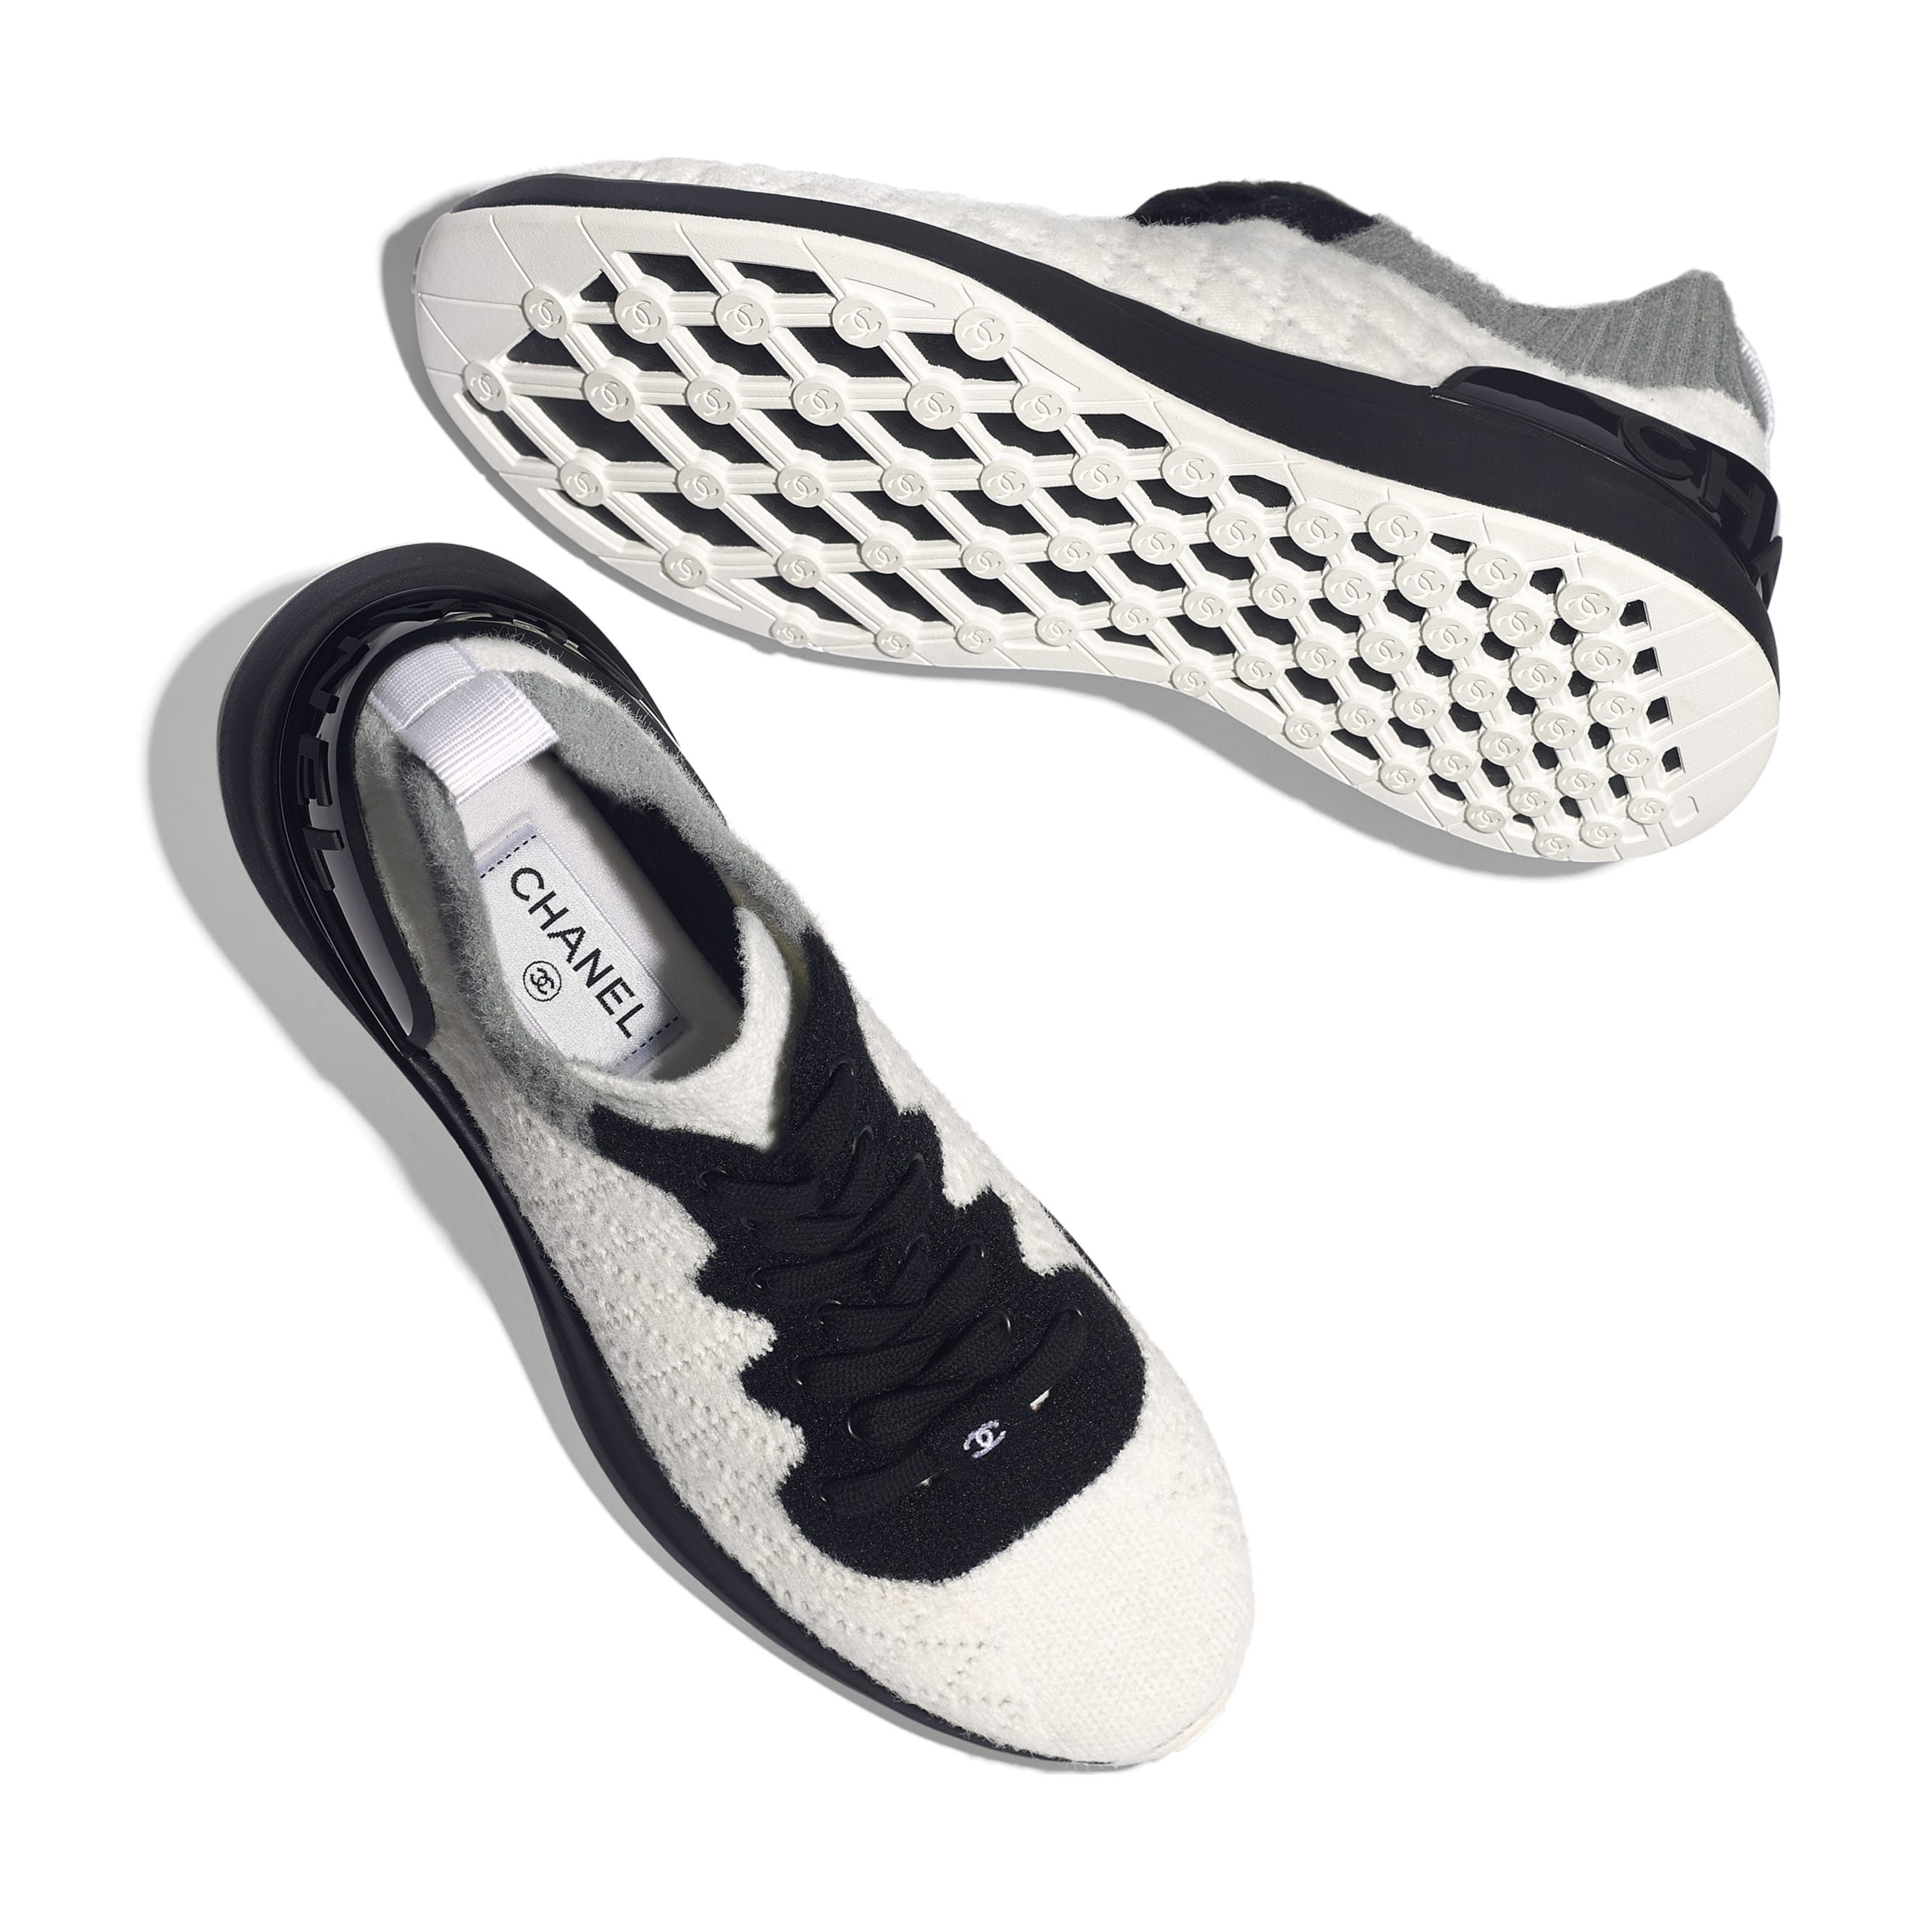 Trainers - White, Black & Gray - Mixed Fibres - Extra view - see standard sized version